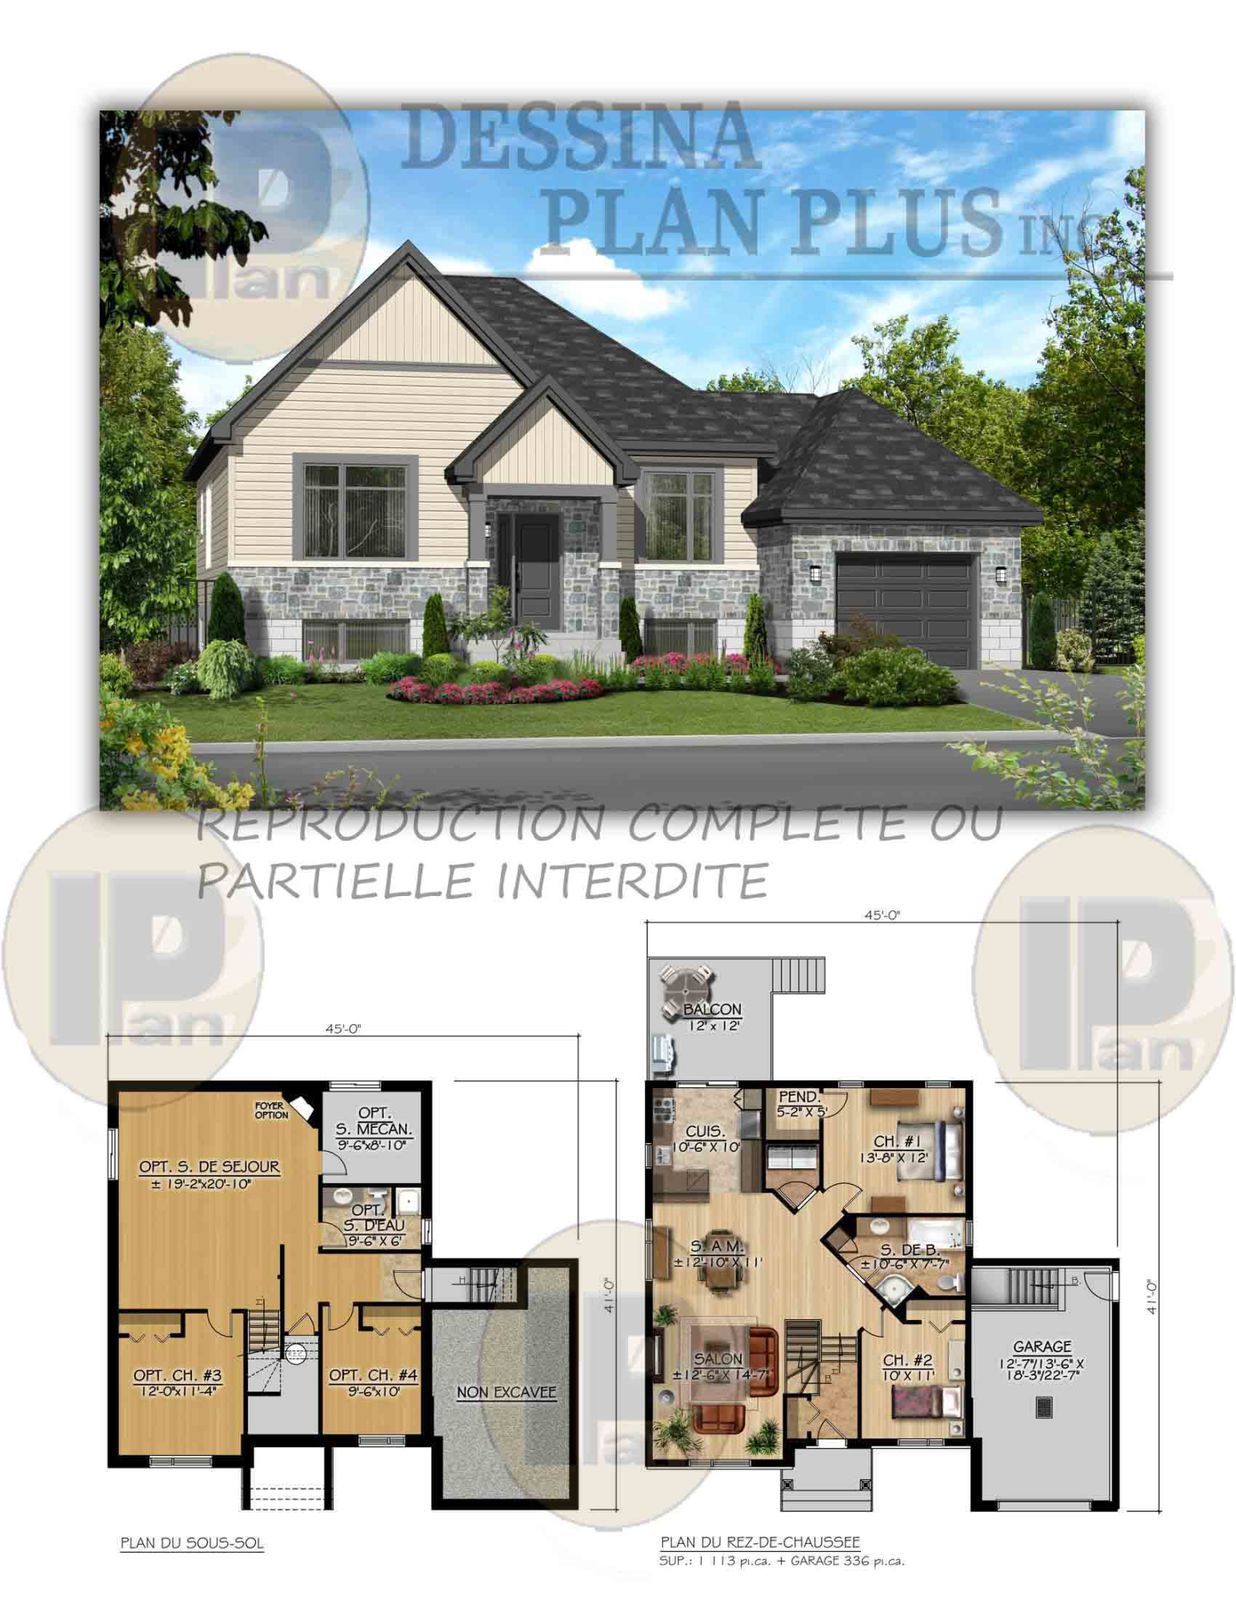 Plans vendre bungalow dessina plan plus inc for Plans architecturaux des maisons